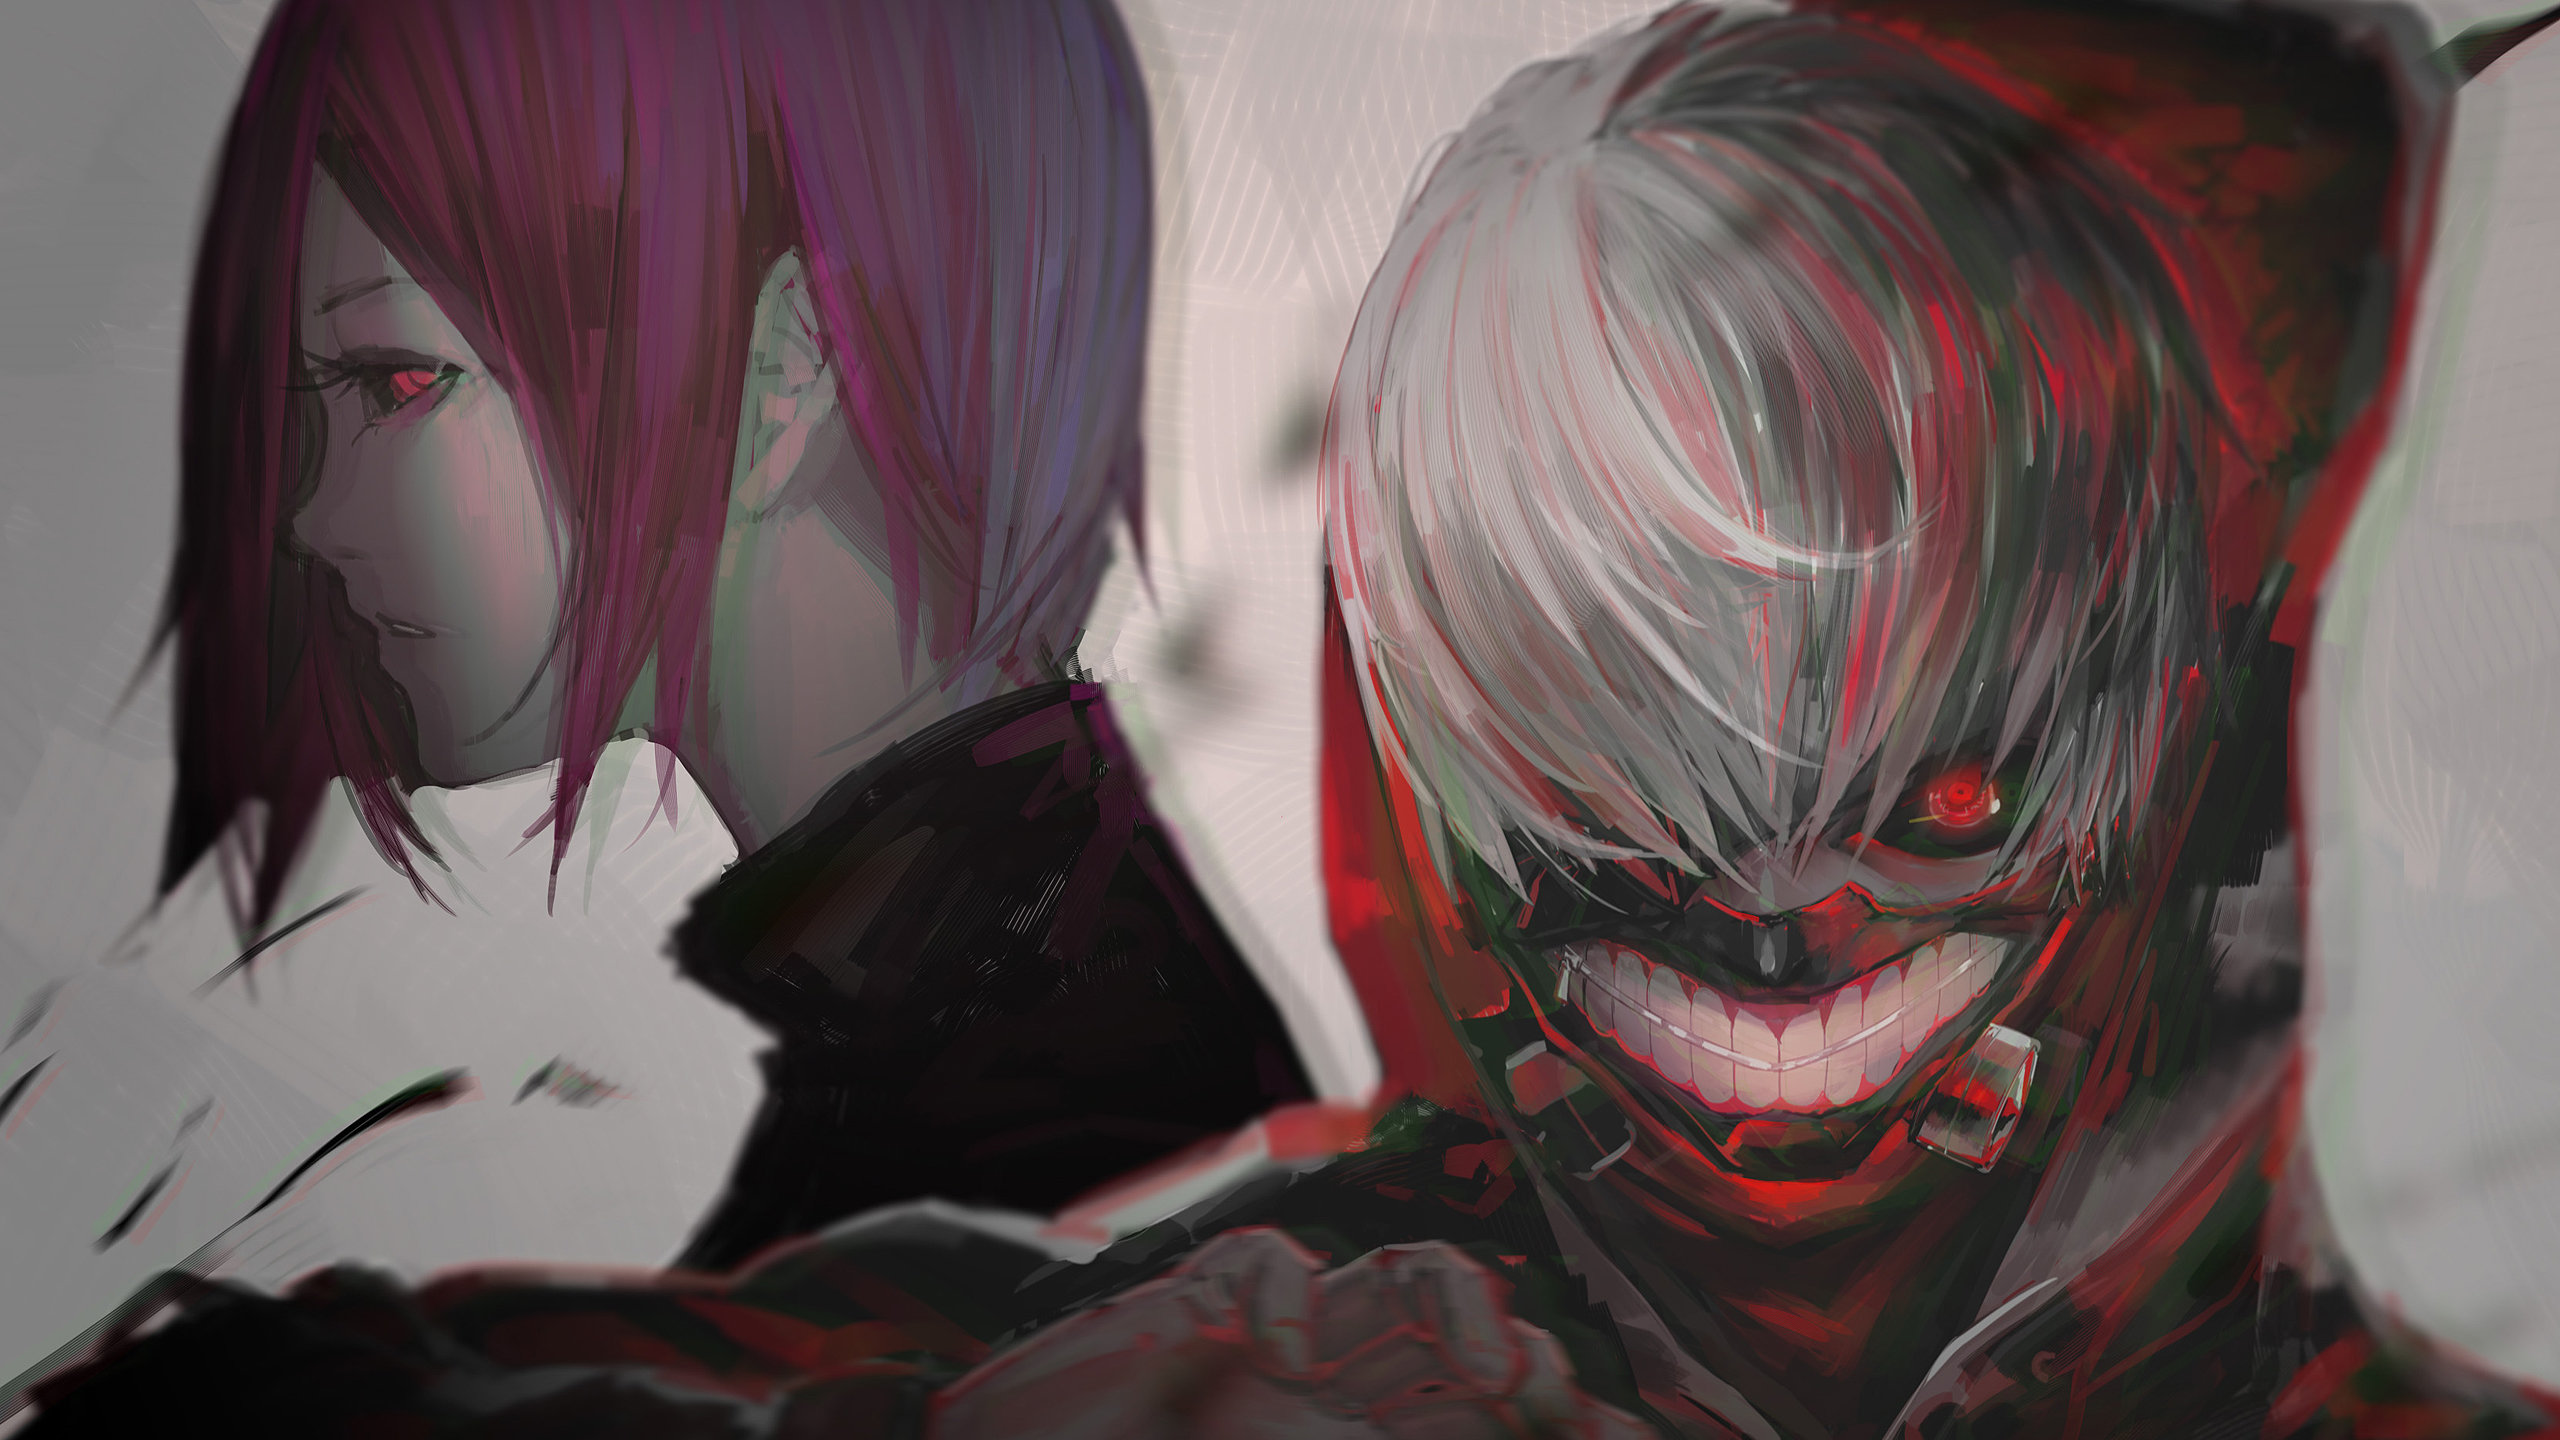 Free Tokyo Ghoul high quality wallpaper ID:150319 for hd 2560x1440 desktop